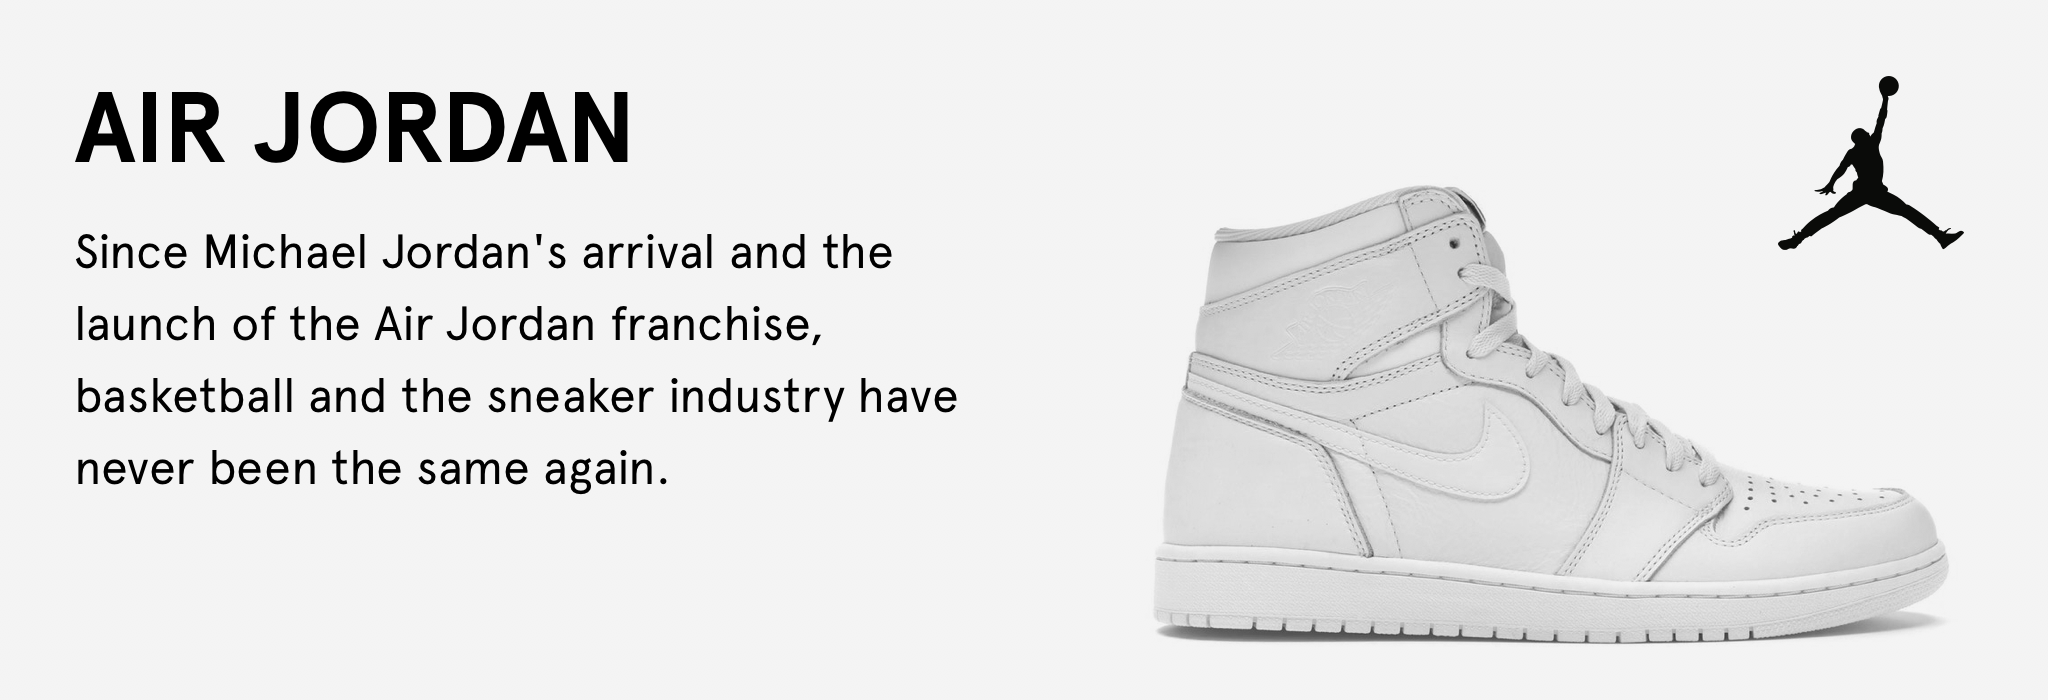 Since Michael Jordan's arrival and the launch of the Air Jordan franchise, basketball and the sneaker industry have never been the same again.